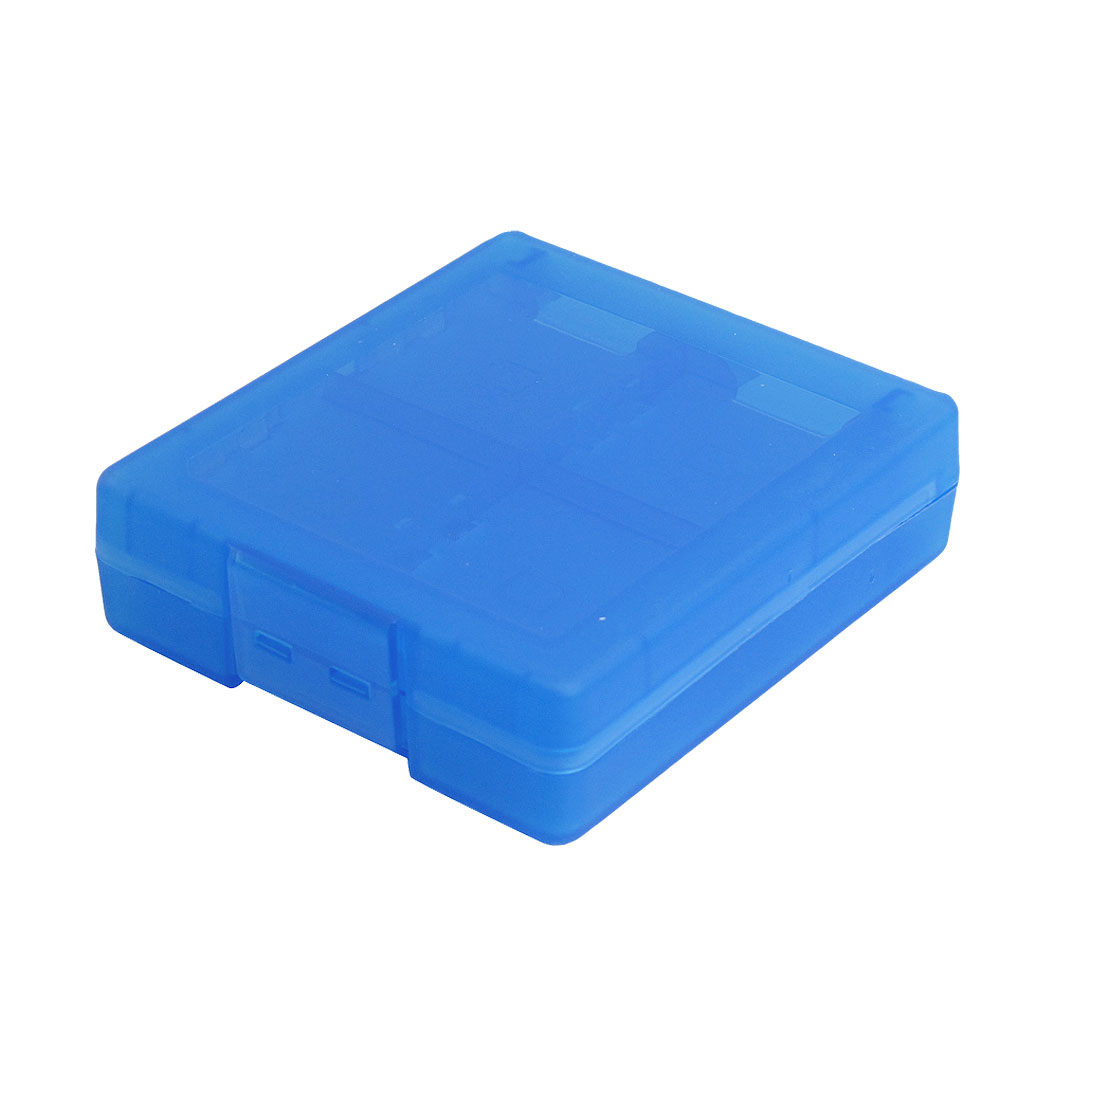 Image of Unique Bargains Blue Plastic Portable Game Card Case Holder for Nintendo DS